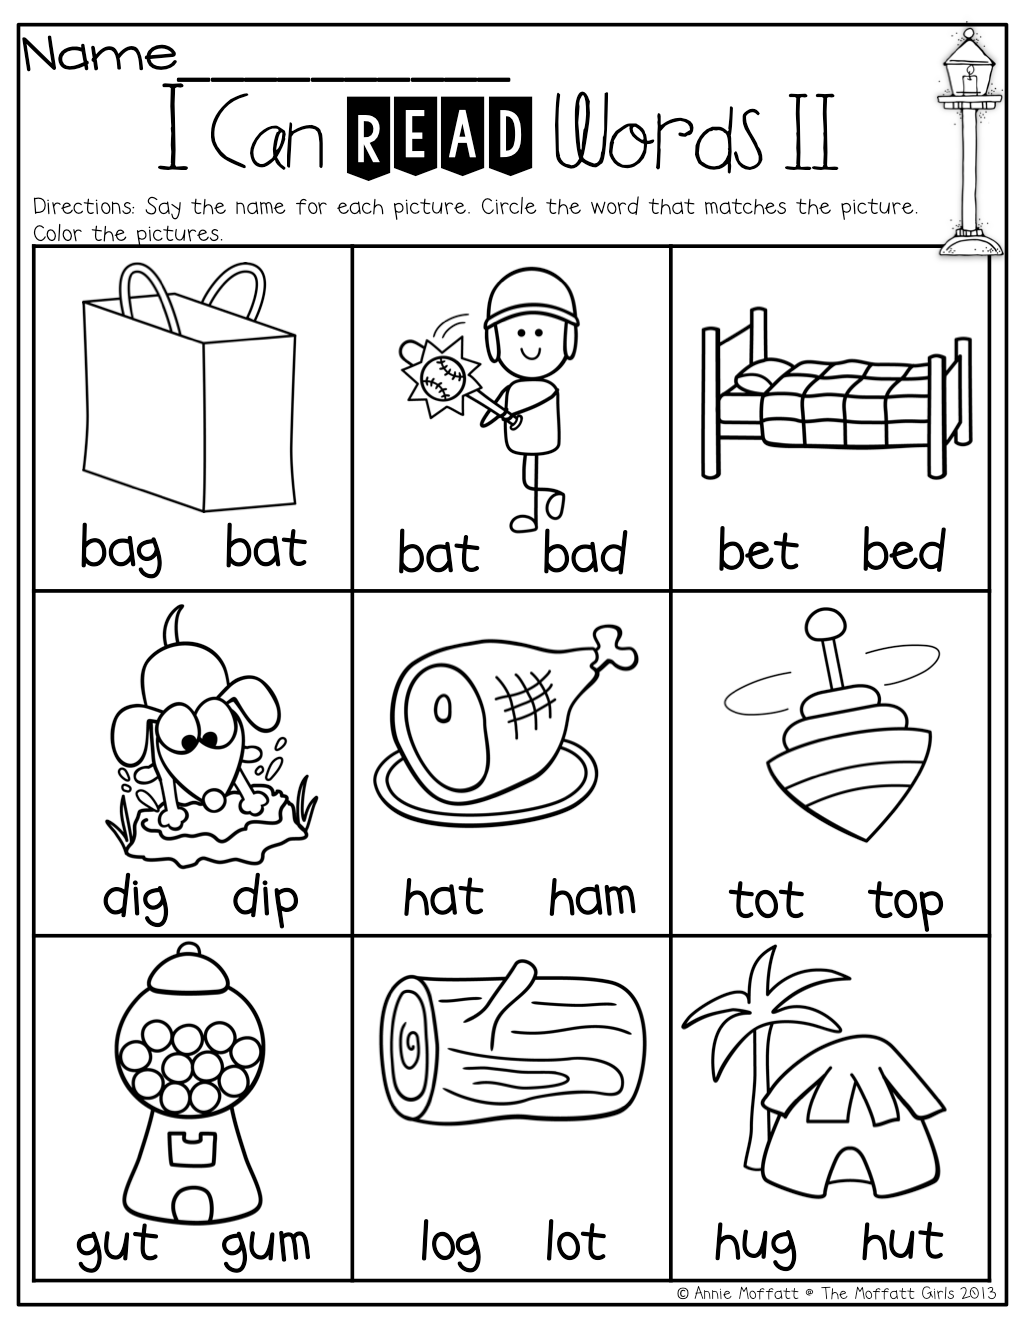 I Can Read Words Simple Cvc Words To Help Beginning Readers The First 2 Letters Are The Same